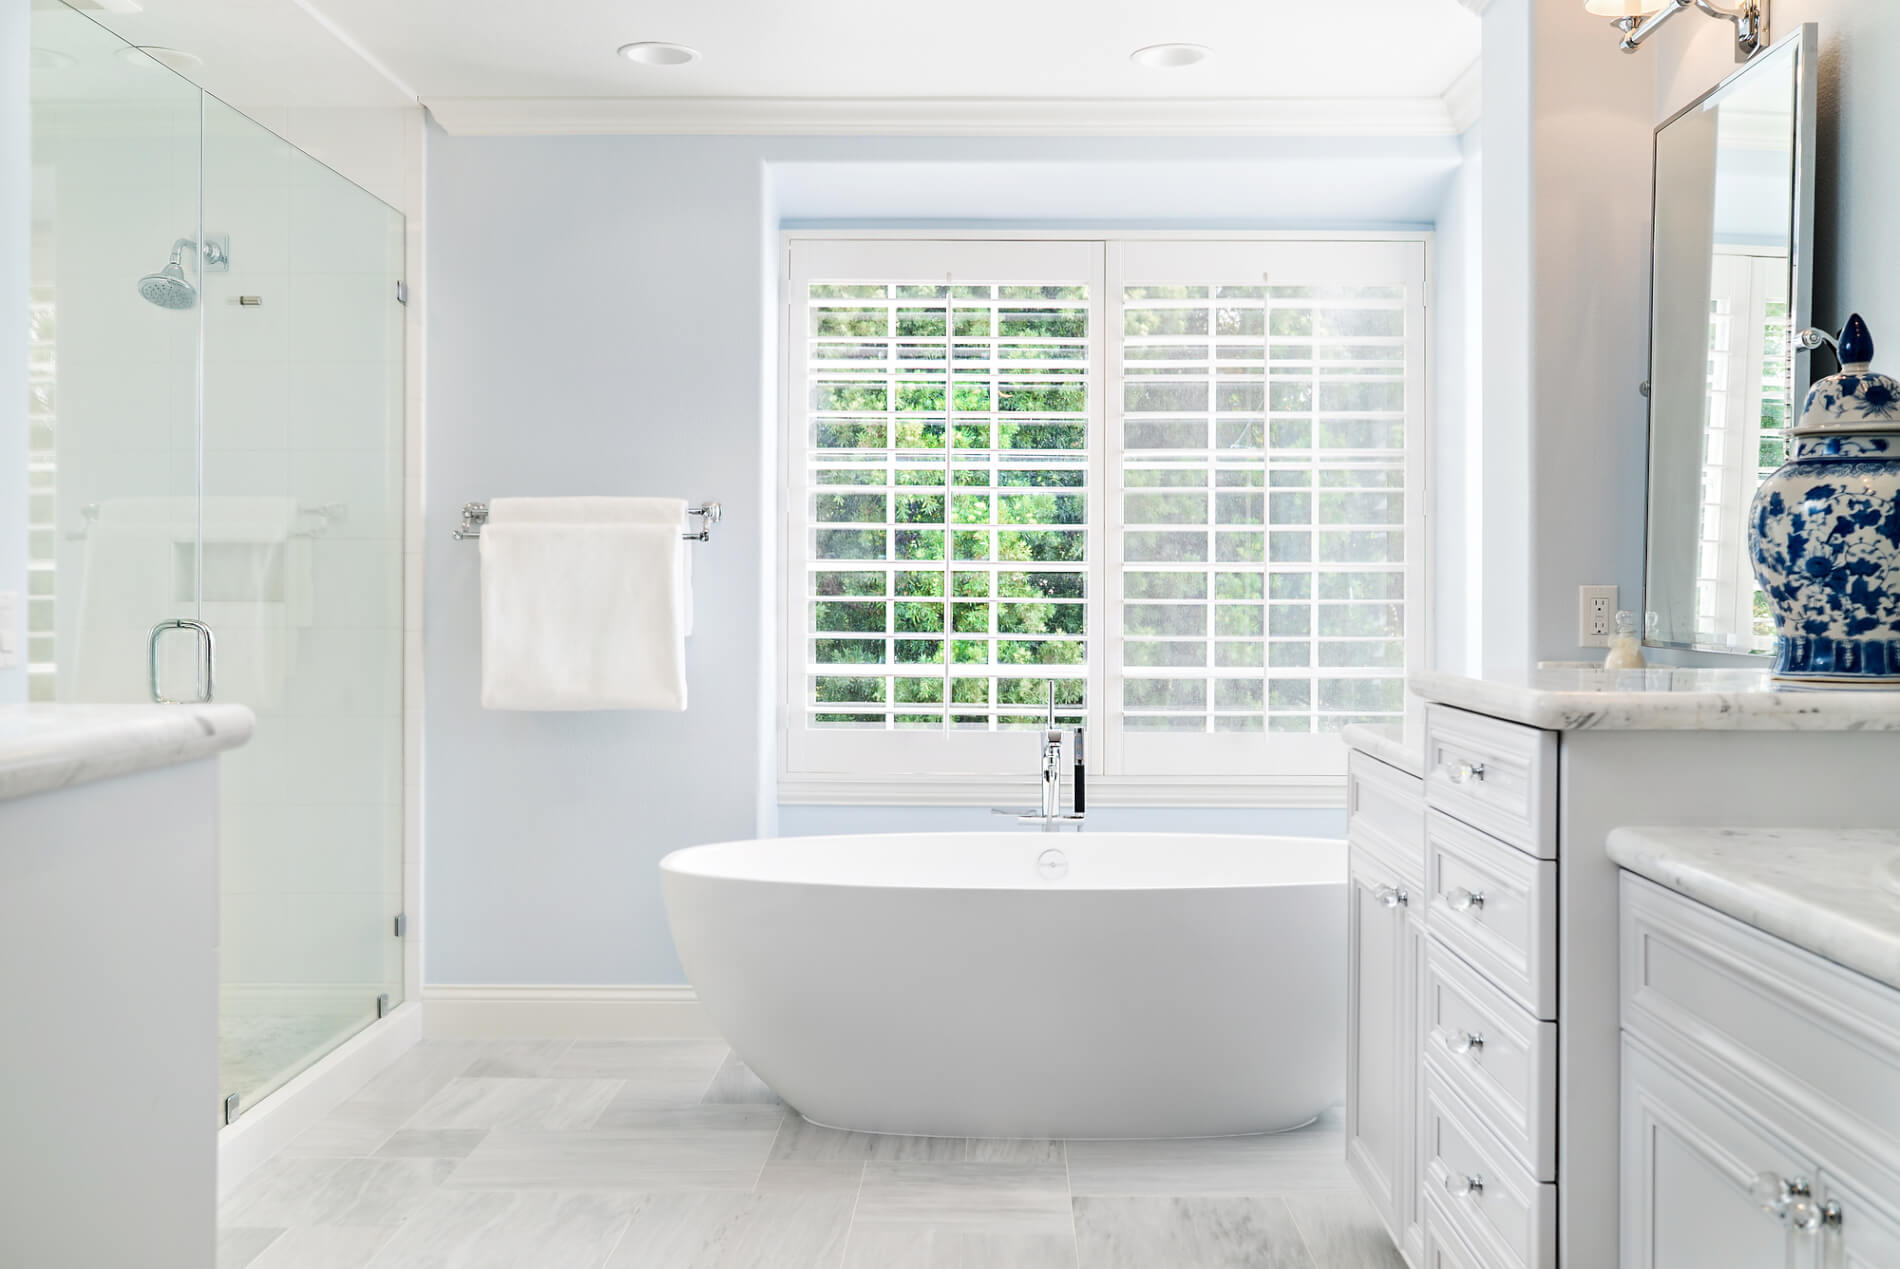 Full Bathroom Renovation Orange County, Large Bathroom Renovation Irvine, Bathroom Renovation Services